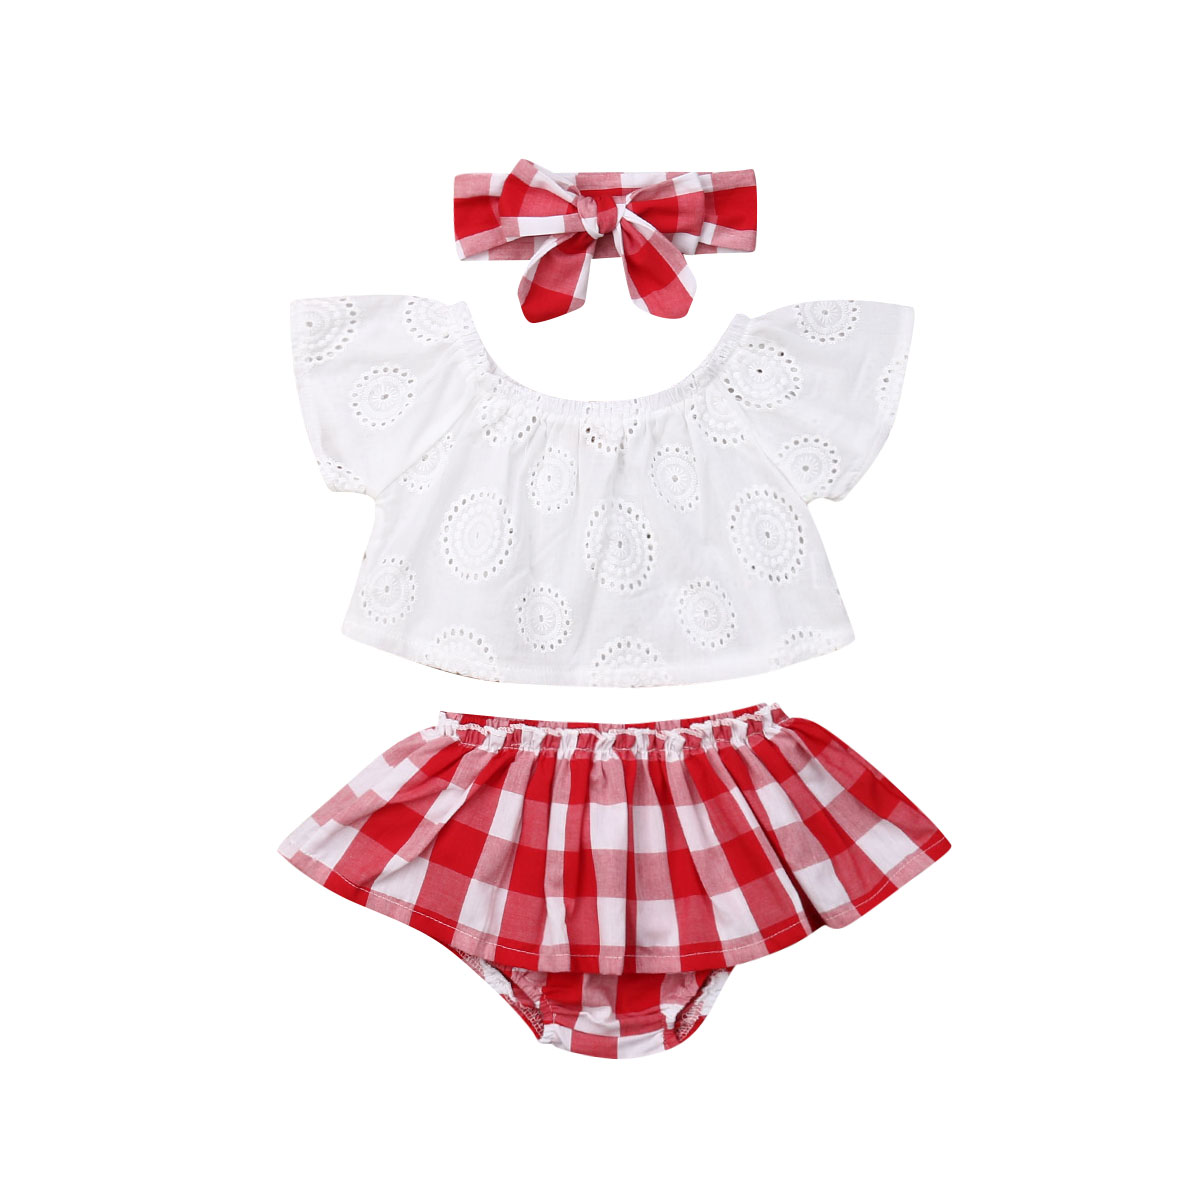 Hot Sale Baby Girls Cotton Clothes Set Casual Newborn Baby Girl 3Pcs Summer Clothes Off-shoulder Tops+ ShortS+Headband Outfits